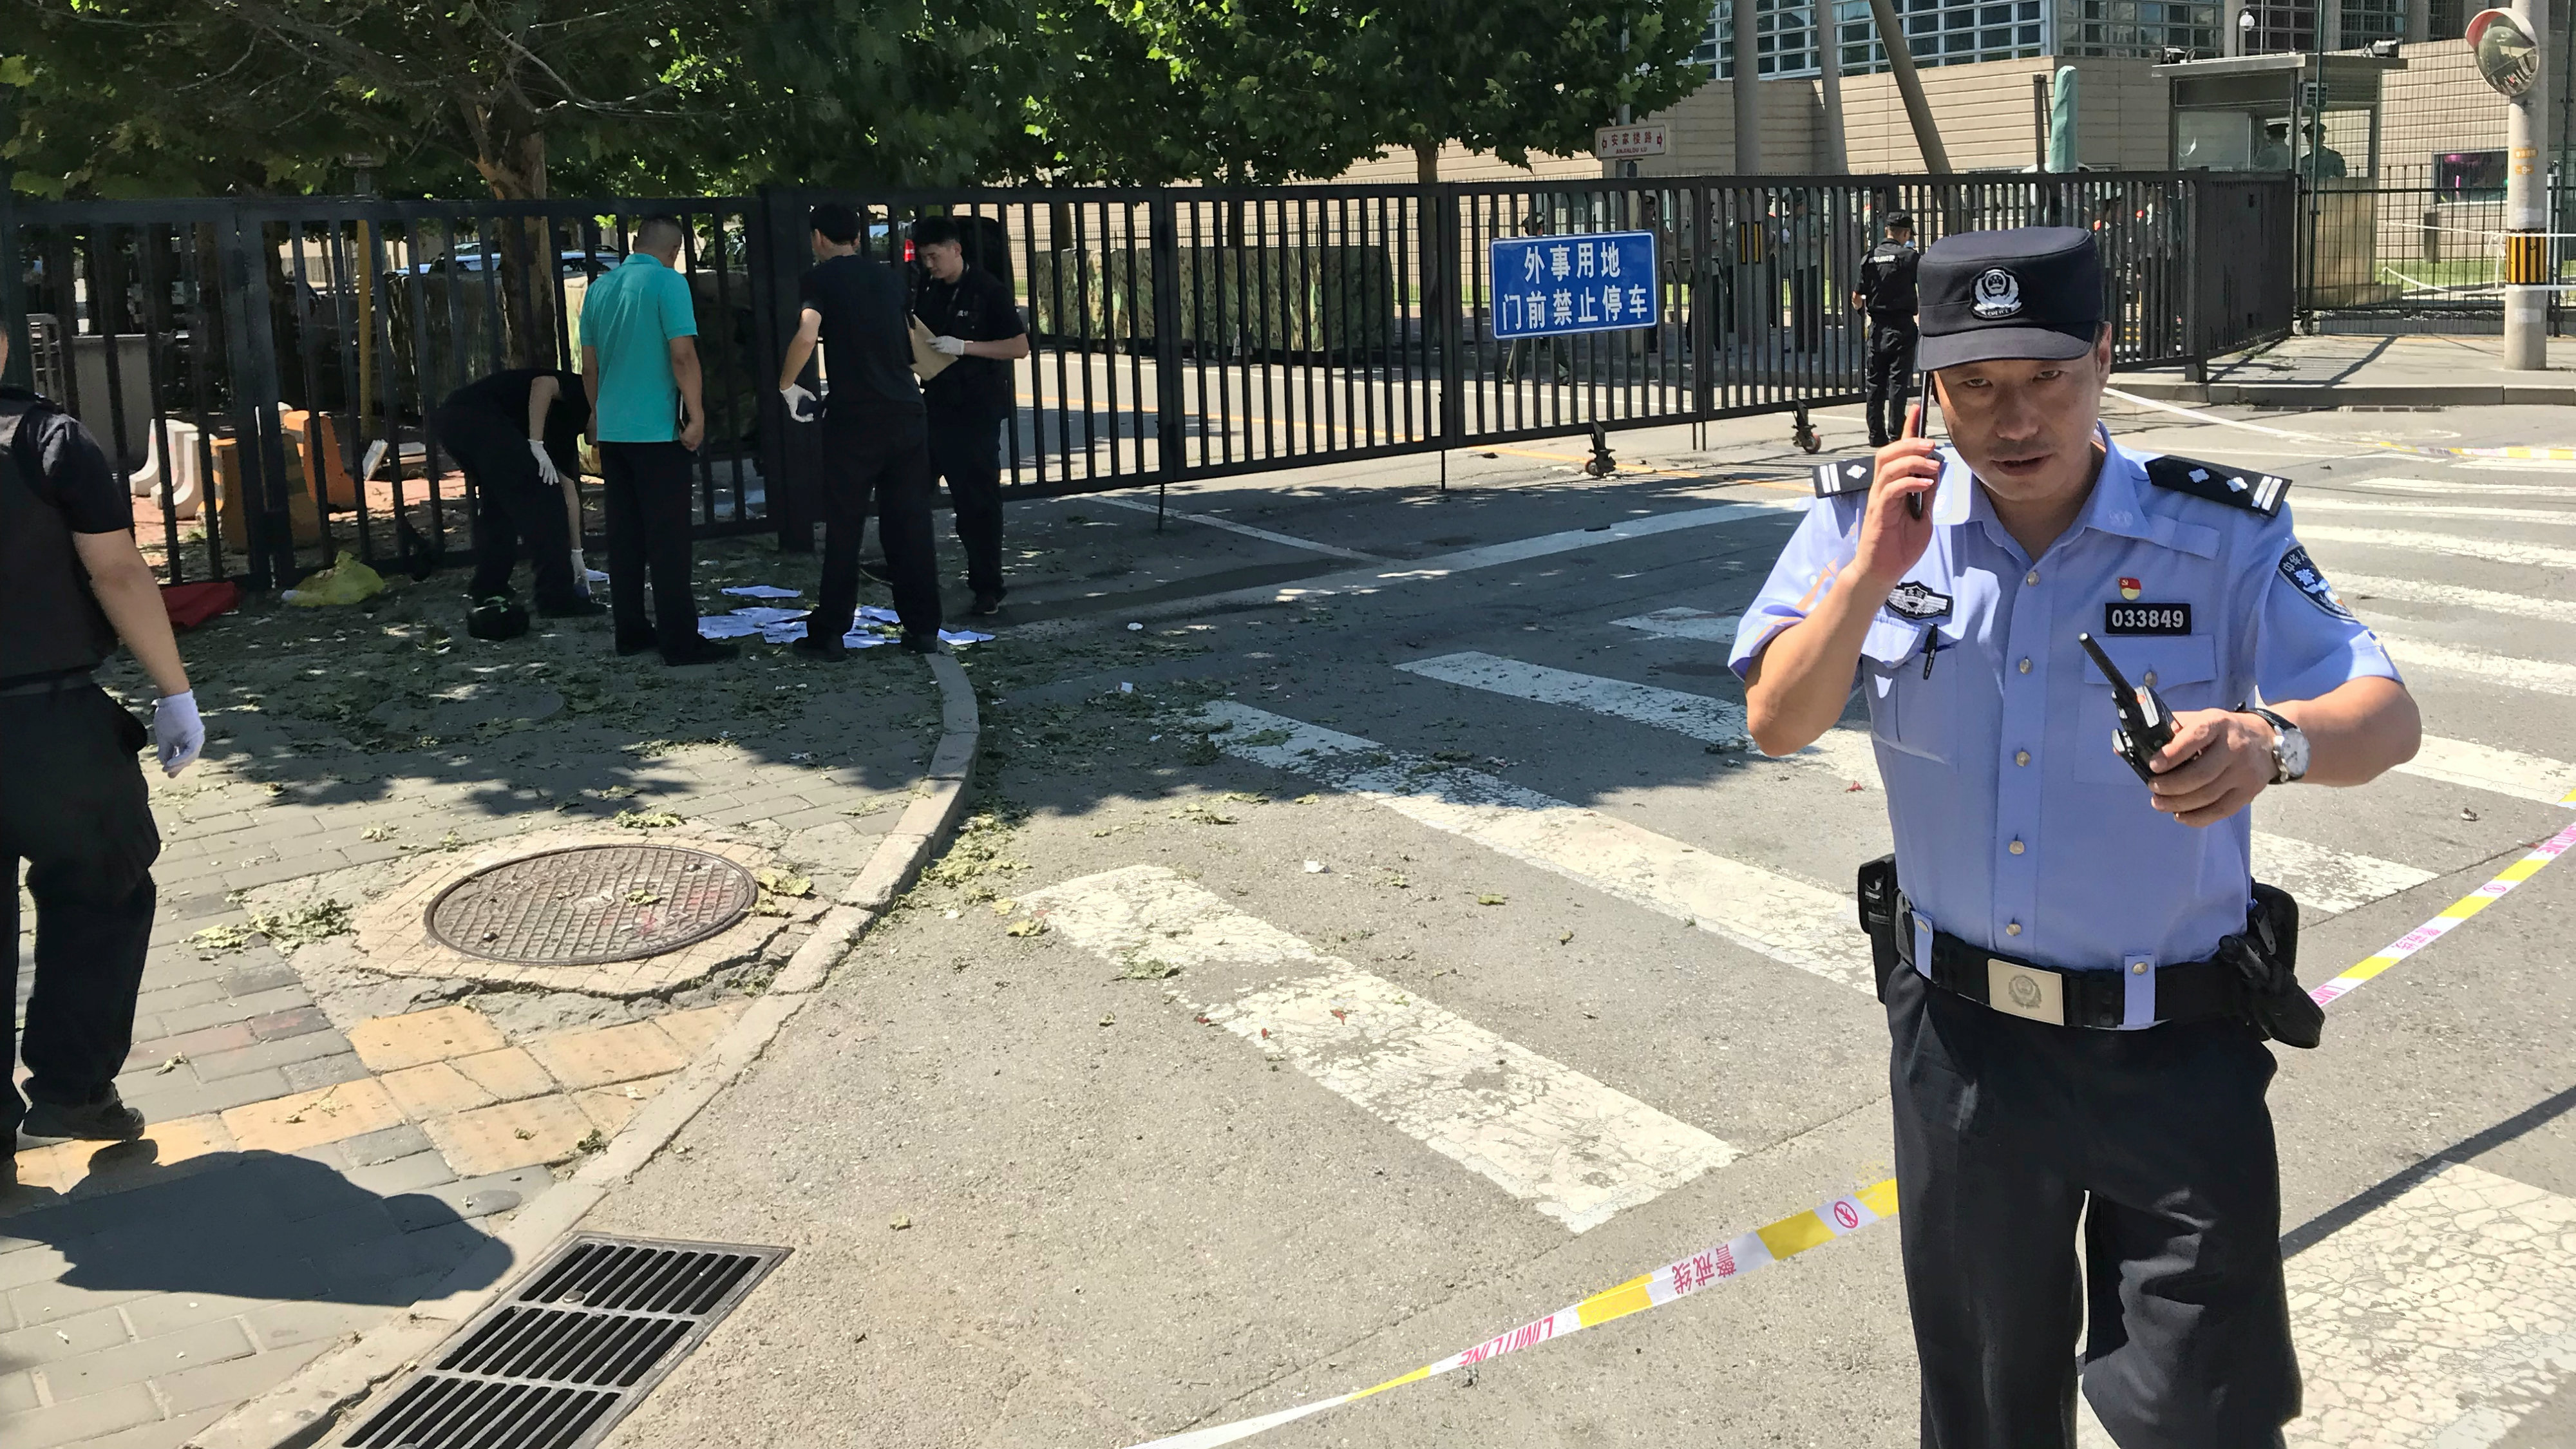 A police officer is seen near the U.S. embassy in Beijing, China July 26, 2018.